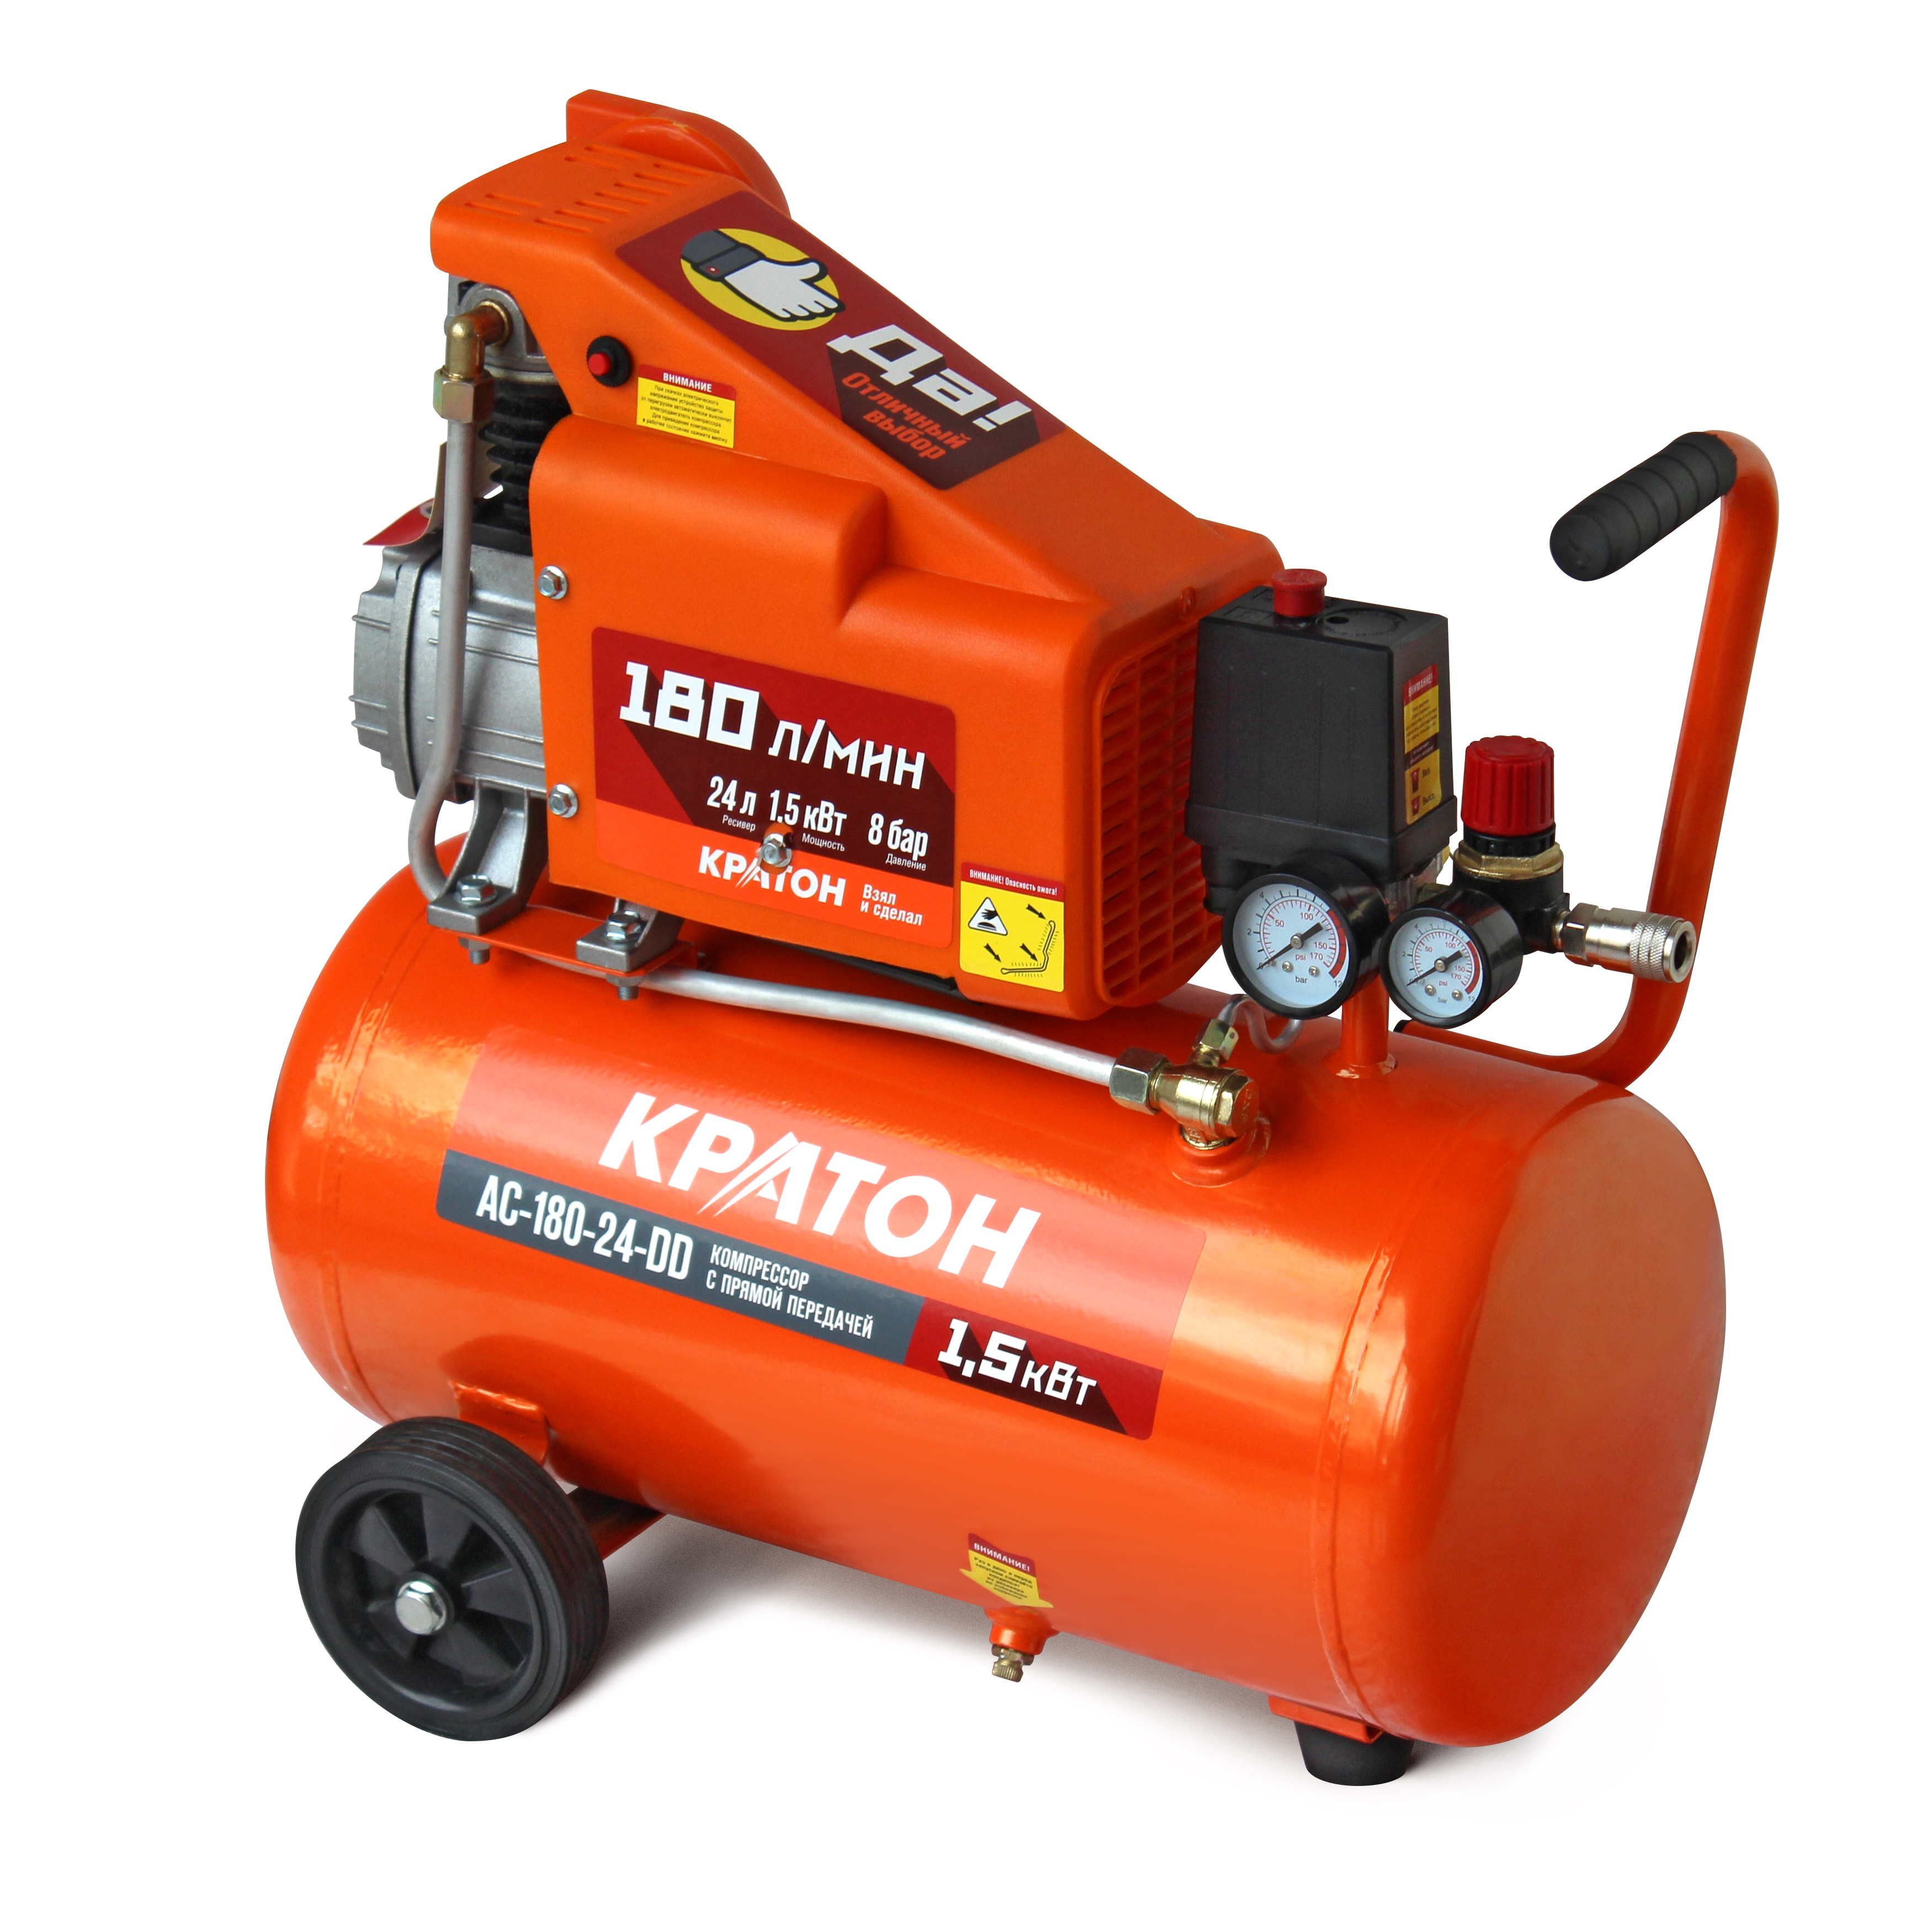 Compressor KRATON with direct transmission AC-180-24-DD compressor kraton with direct transmission ac 360 100 ddv